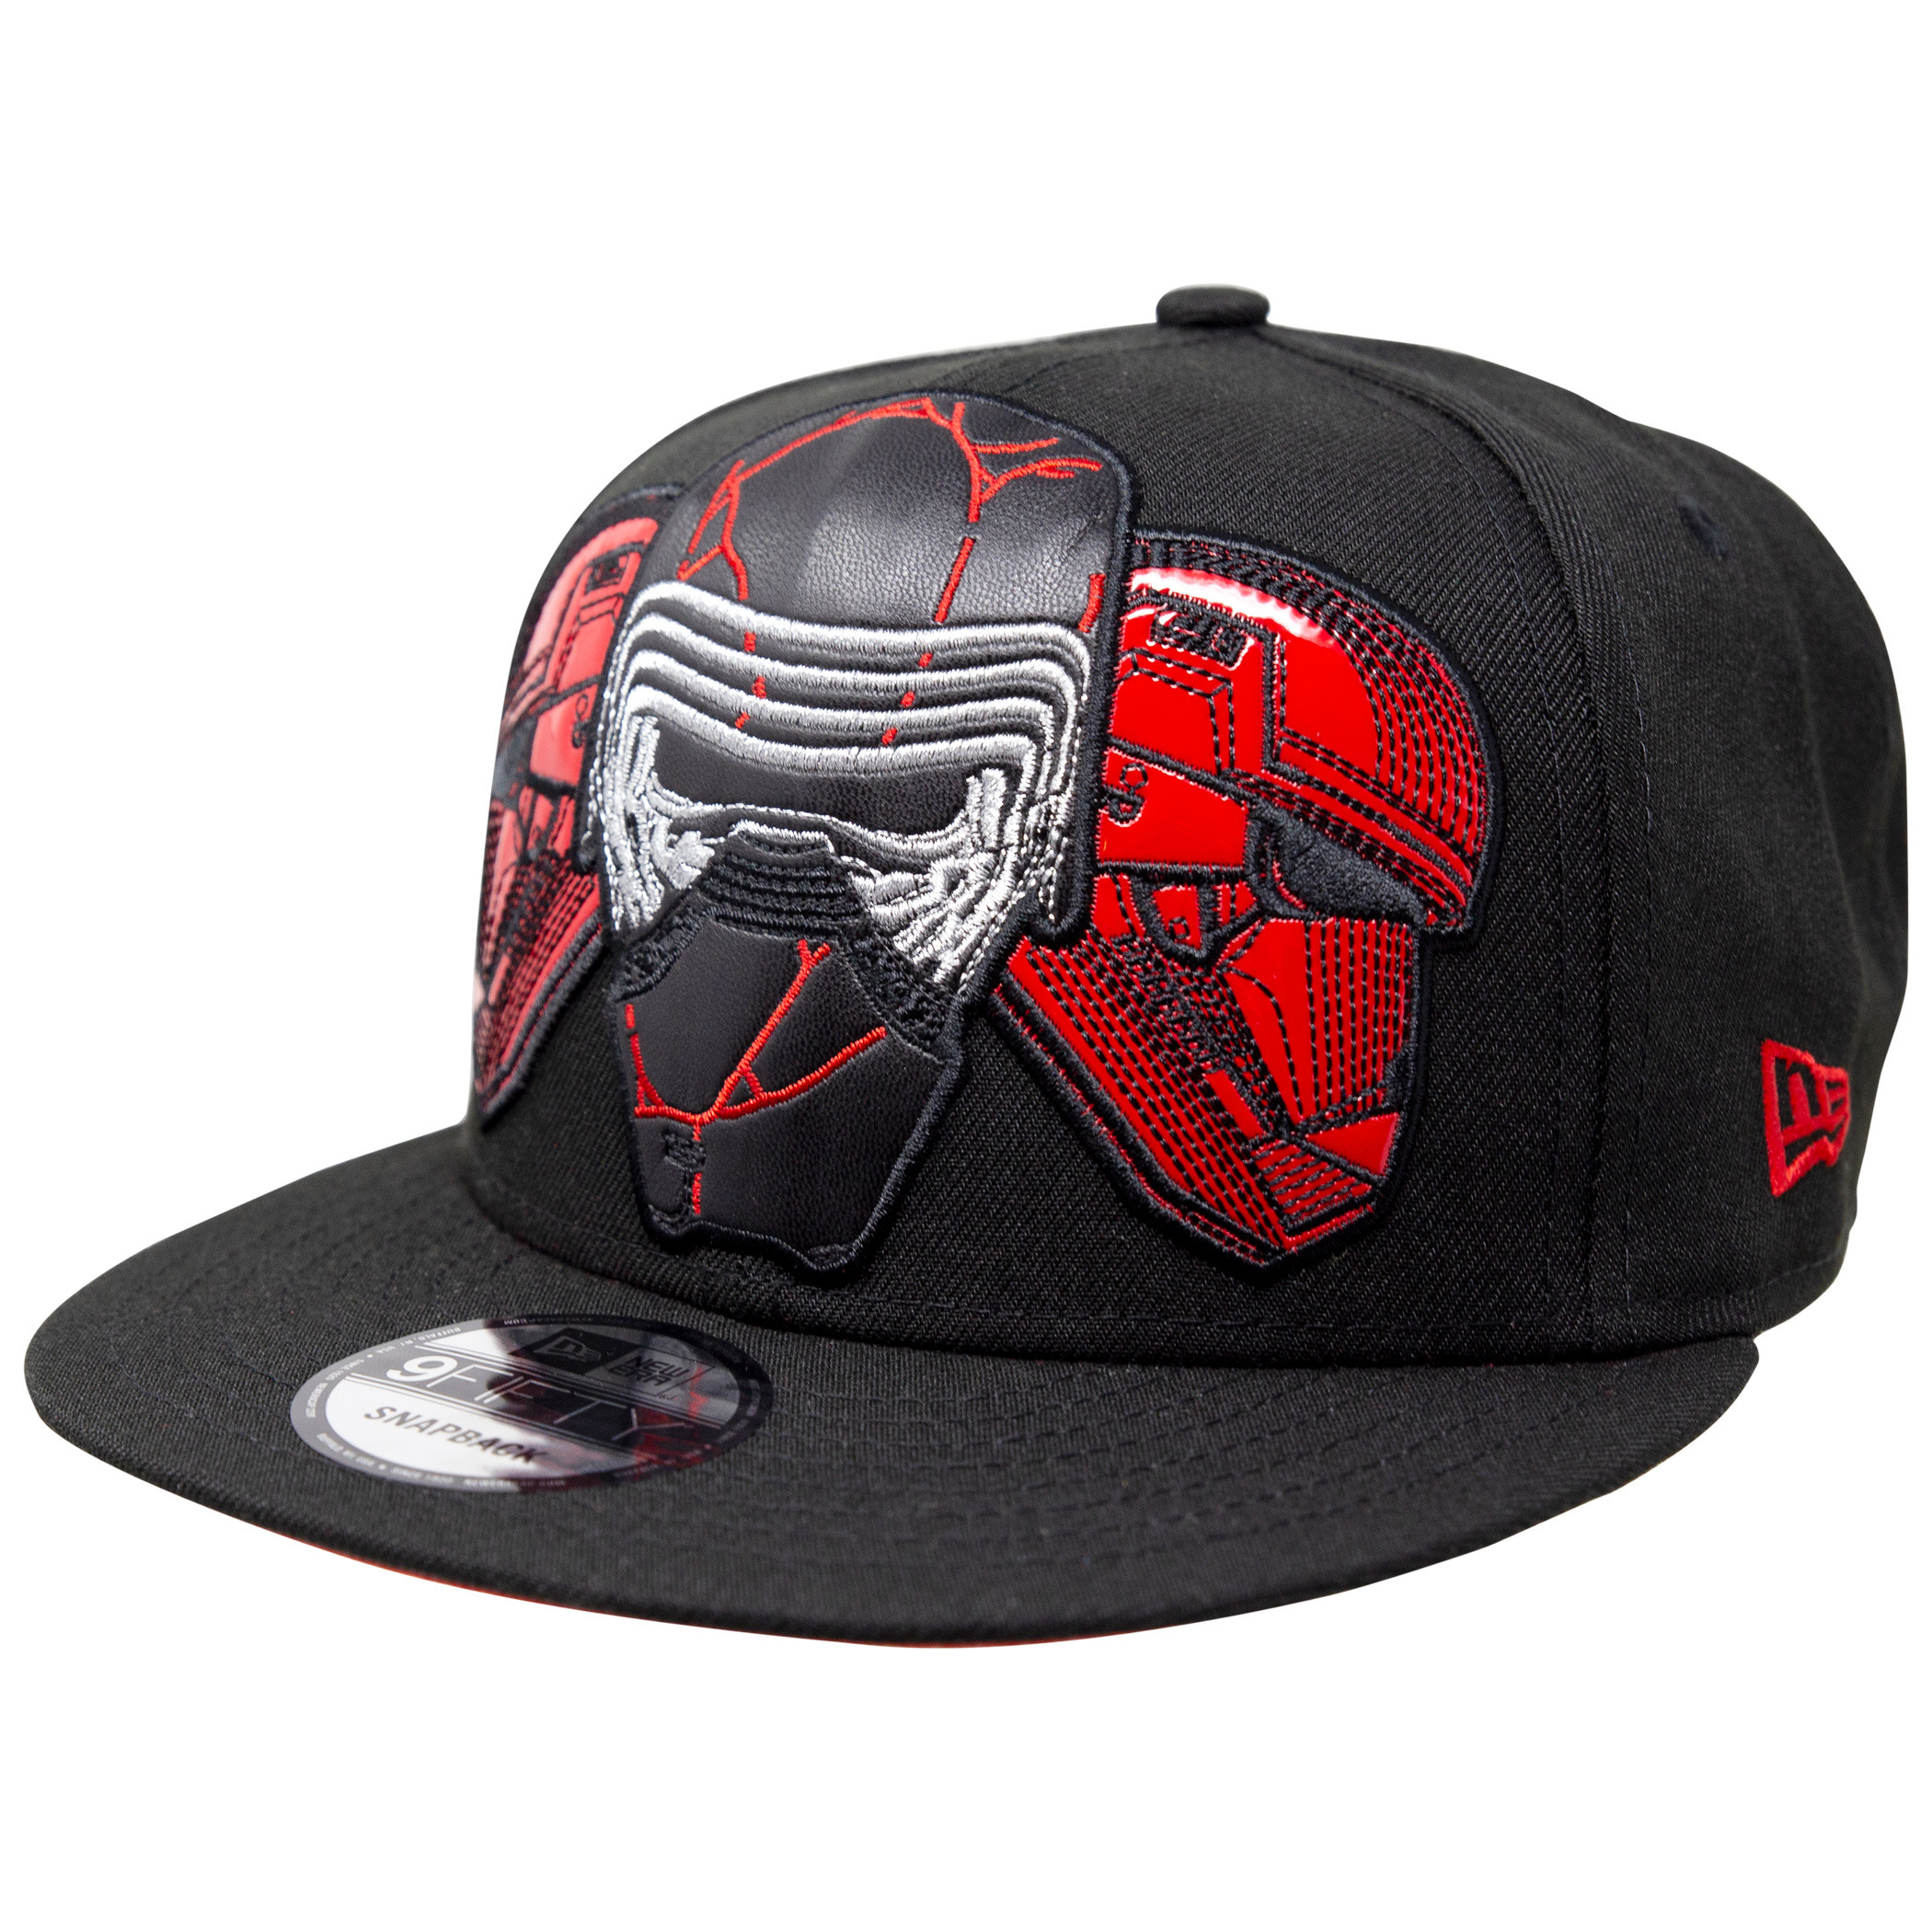 TROS Leather Empire Trio 9Fifty Adjustable Hat